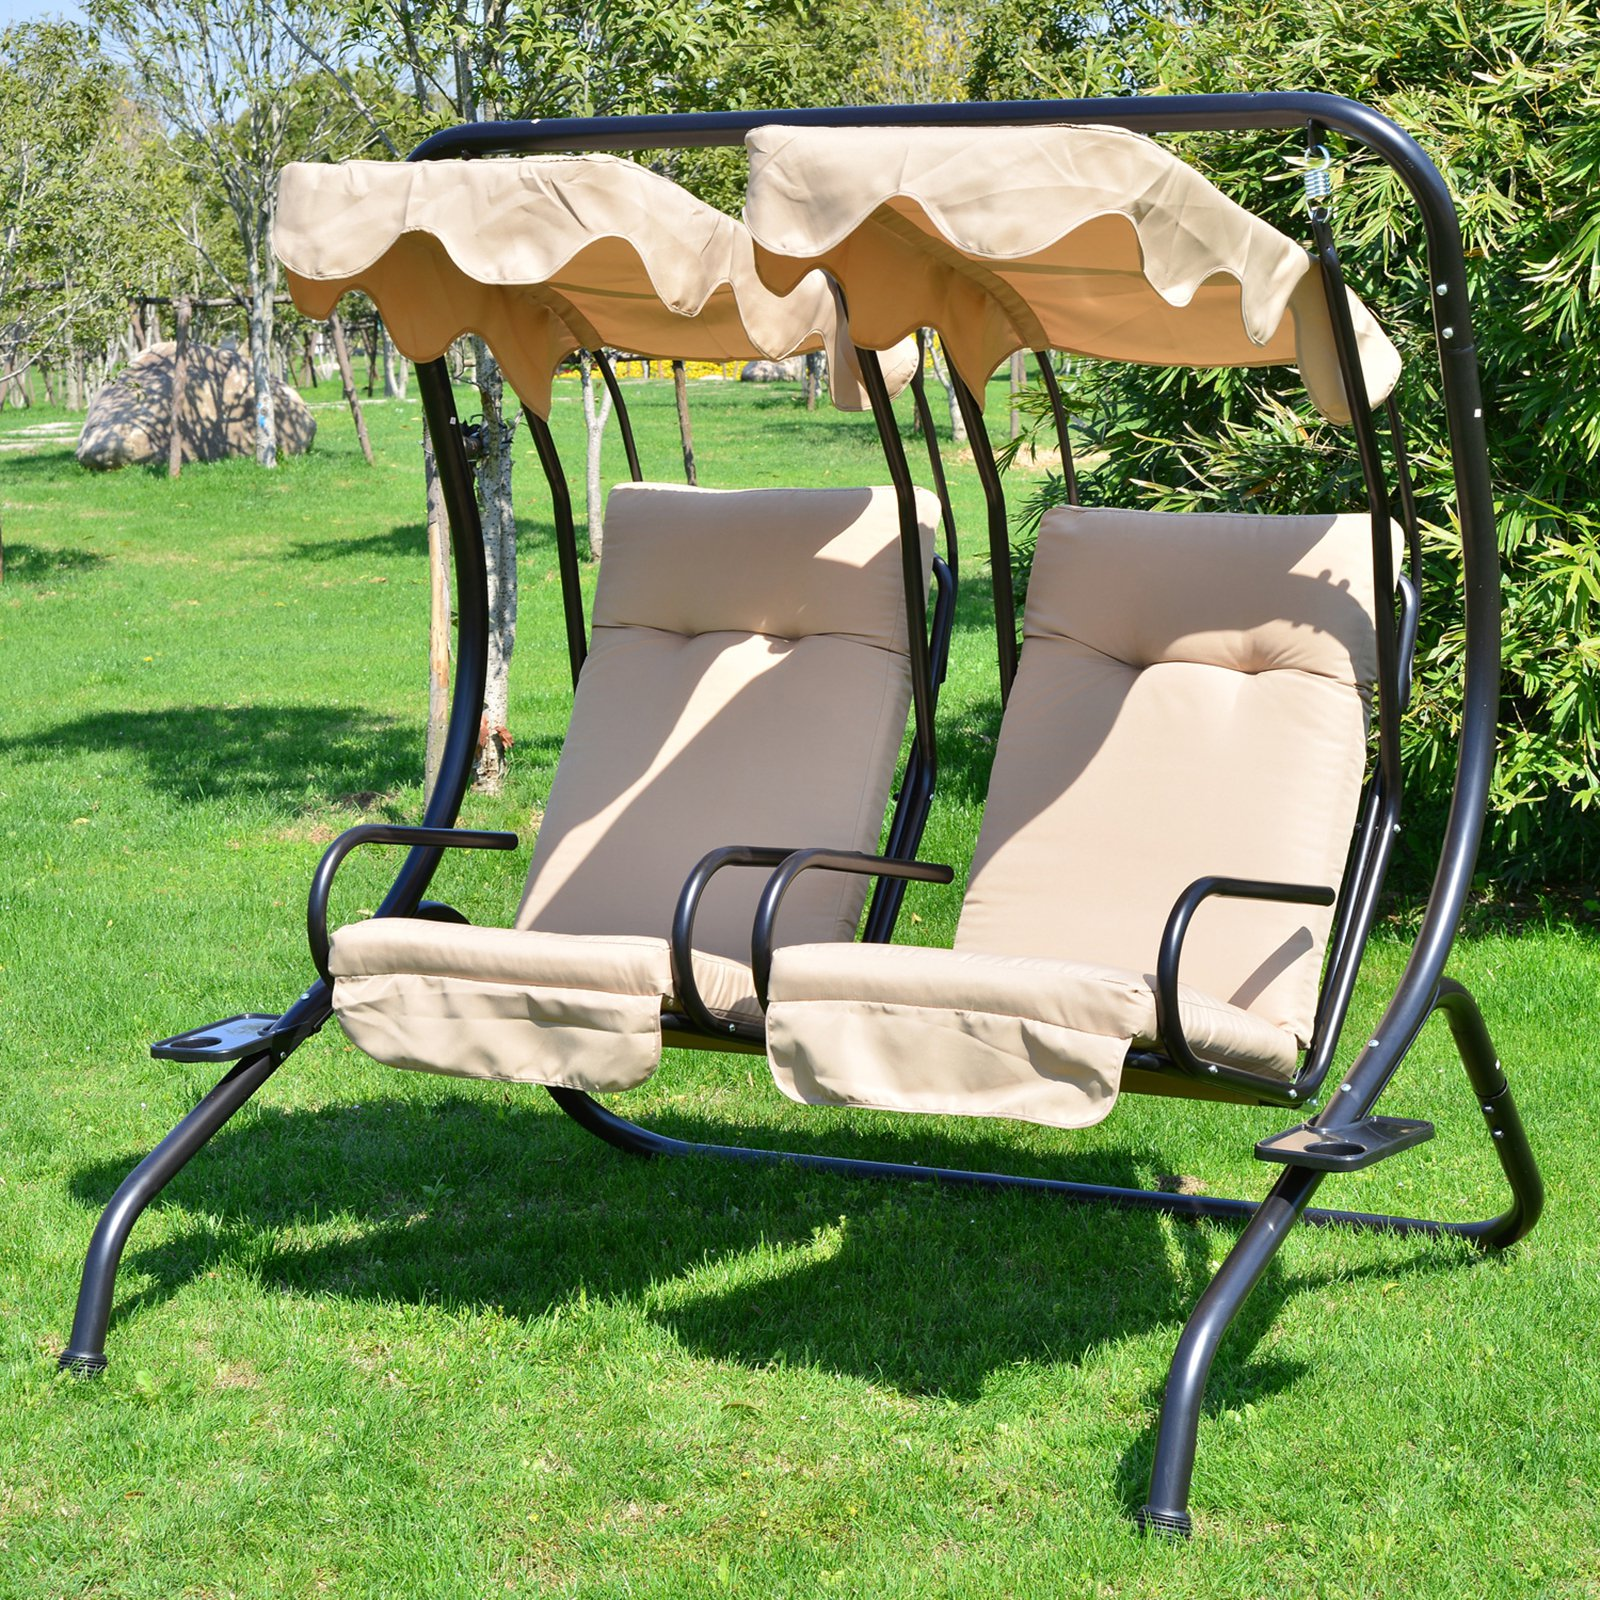 Outsunny Covered Metal Double Seat Canopy Porch Swing by Aosom LLC